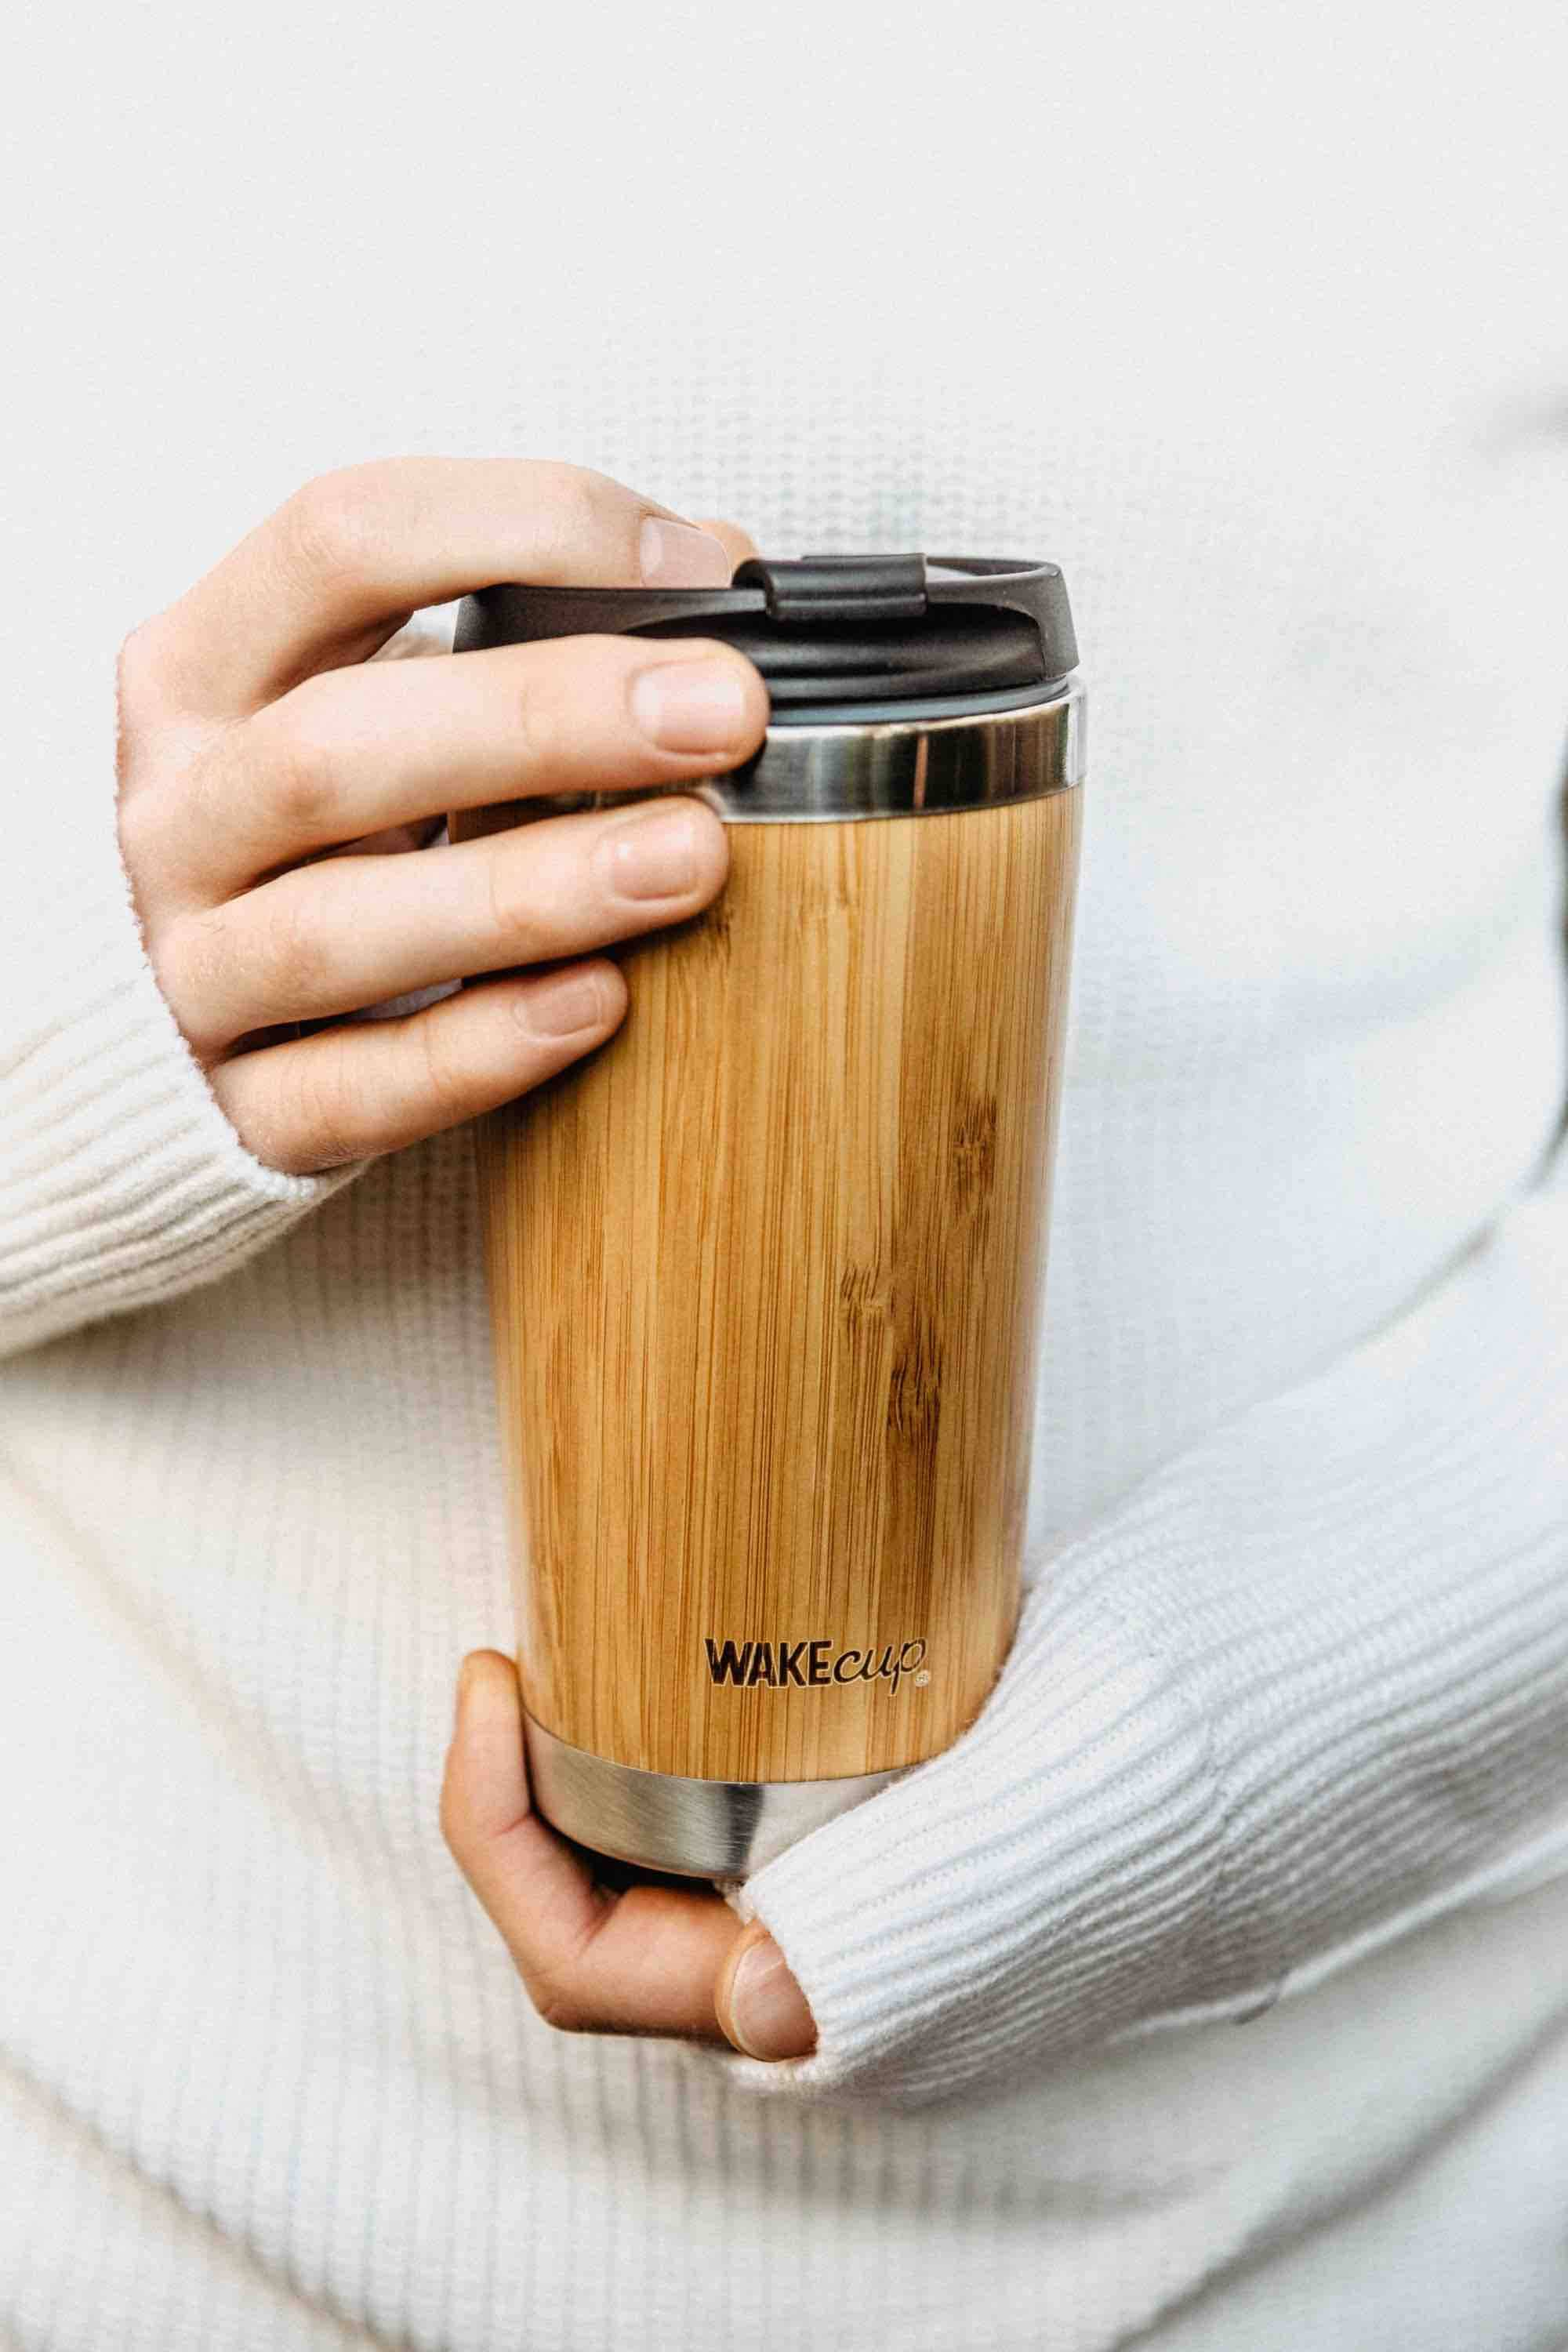 Wakecup Reusable Coffee Cup